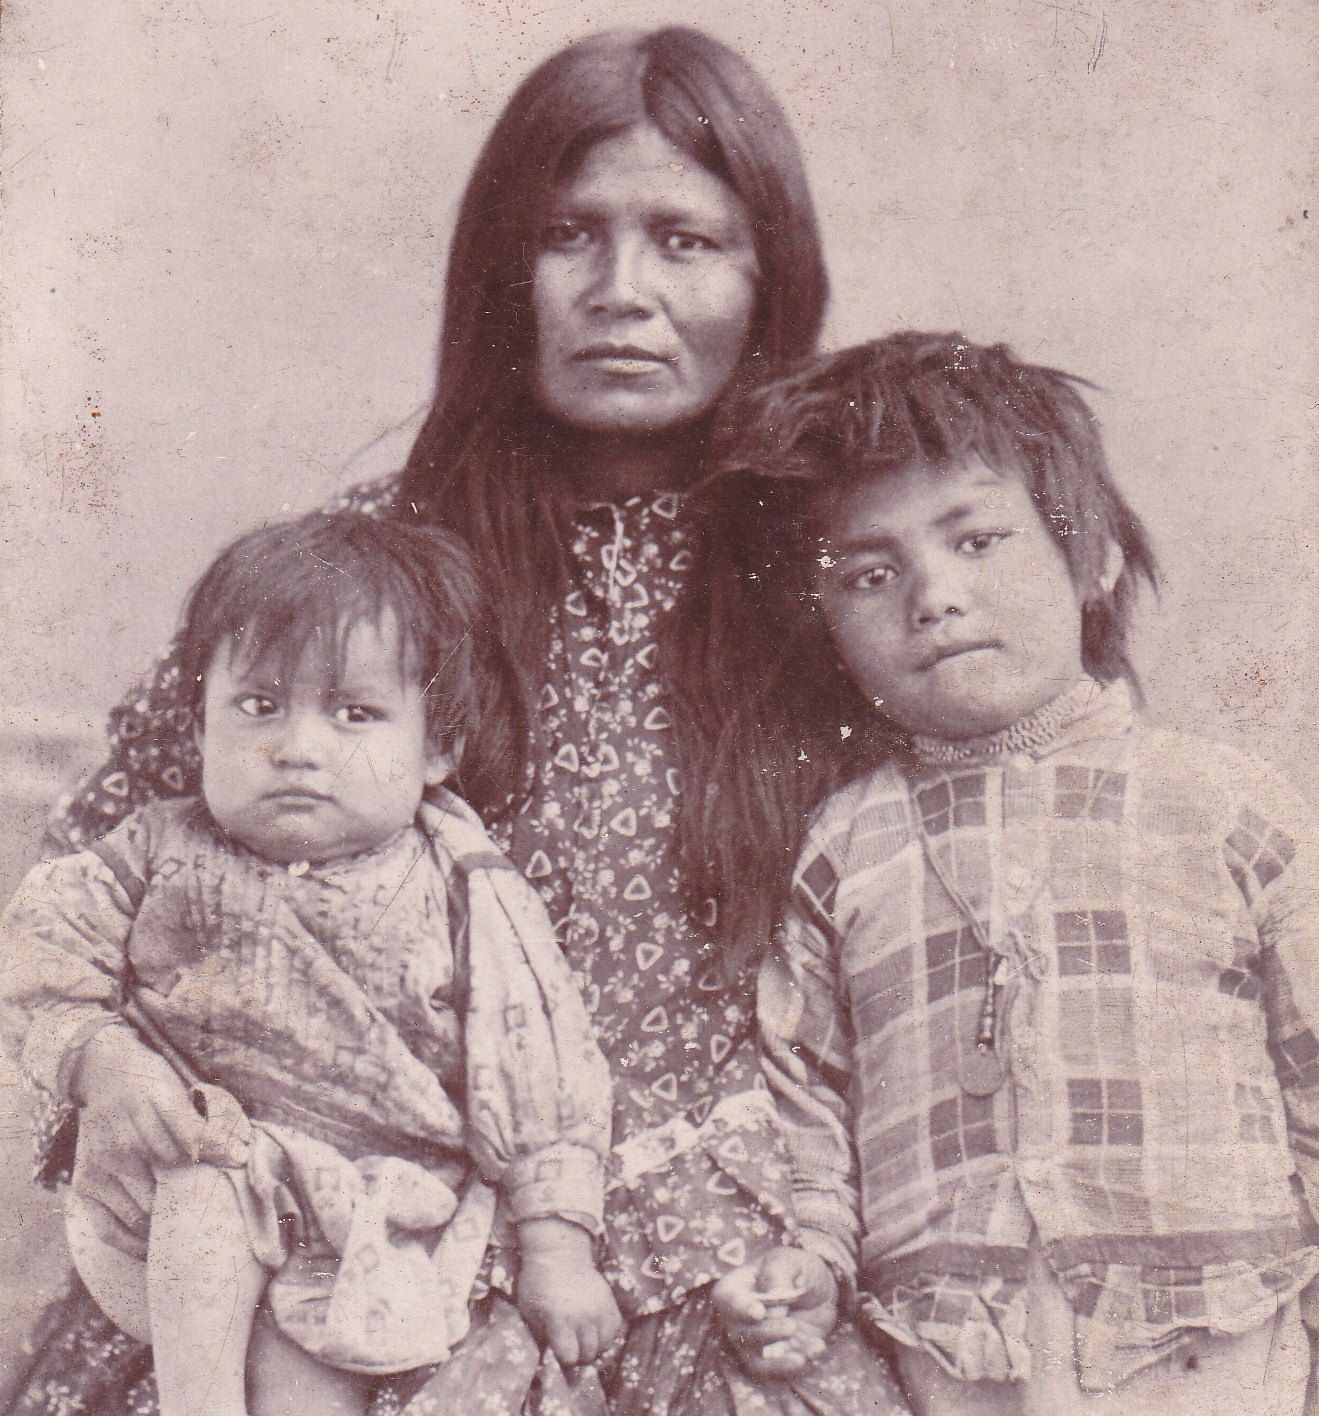 wife of geronimo two children, 1880s, native american apache